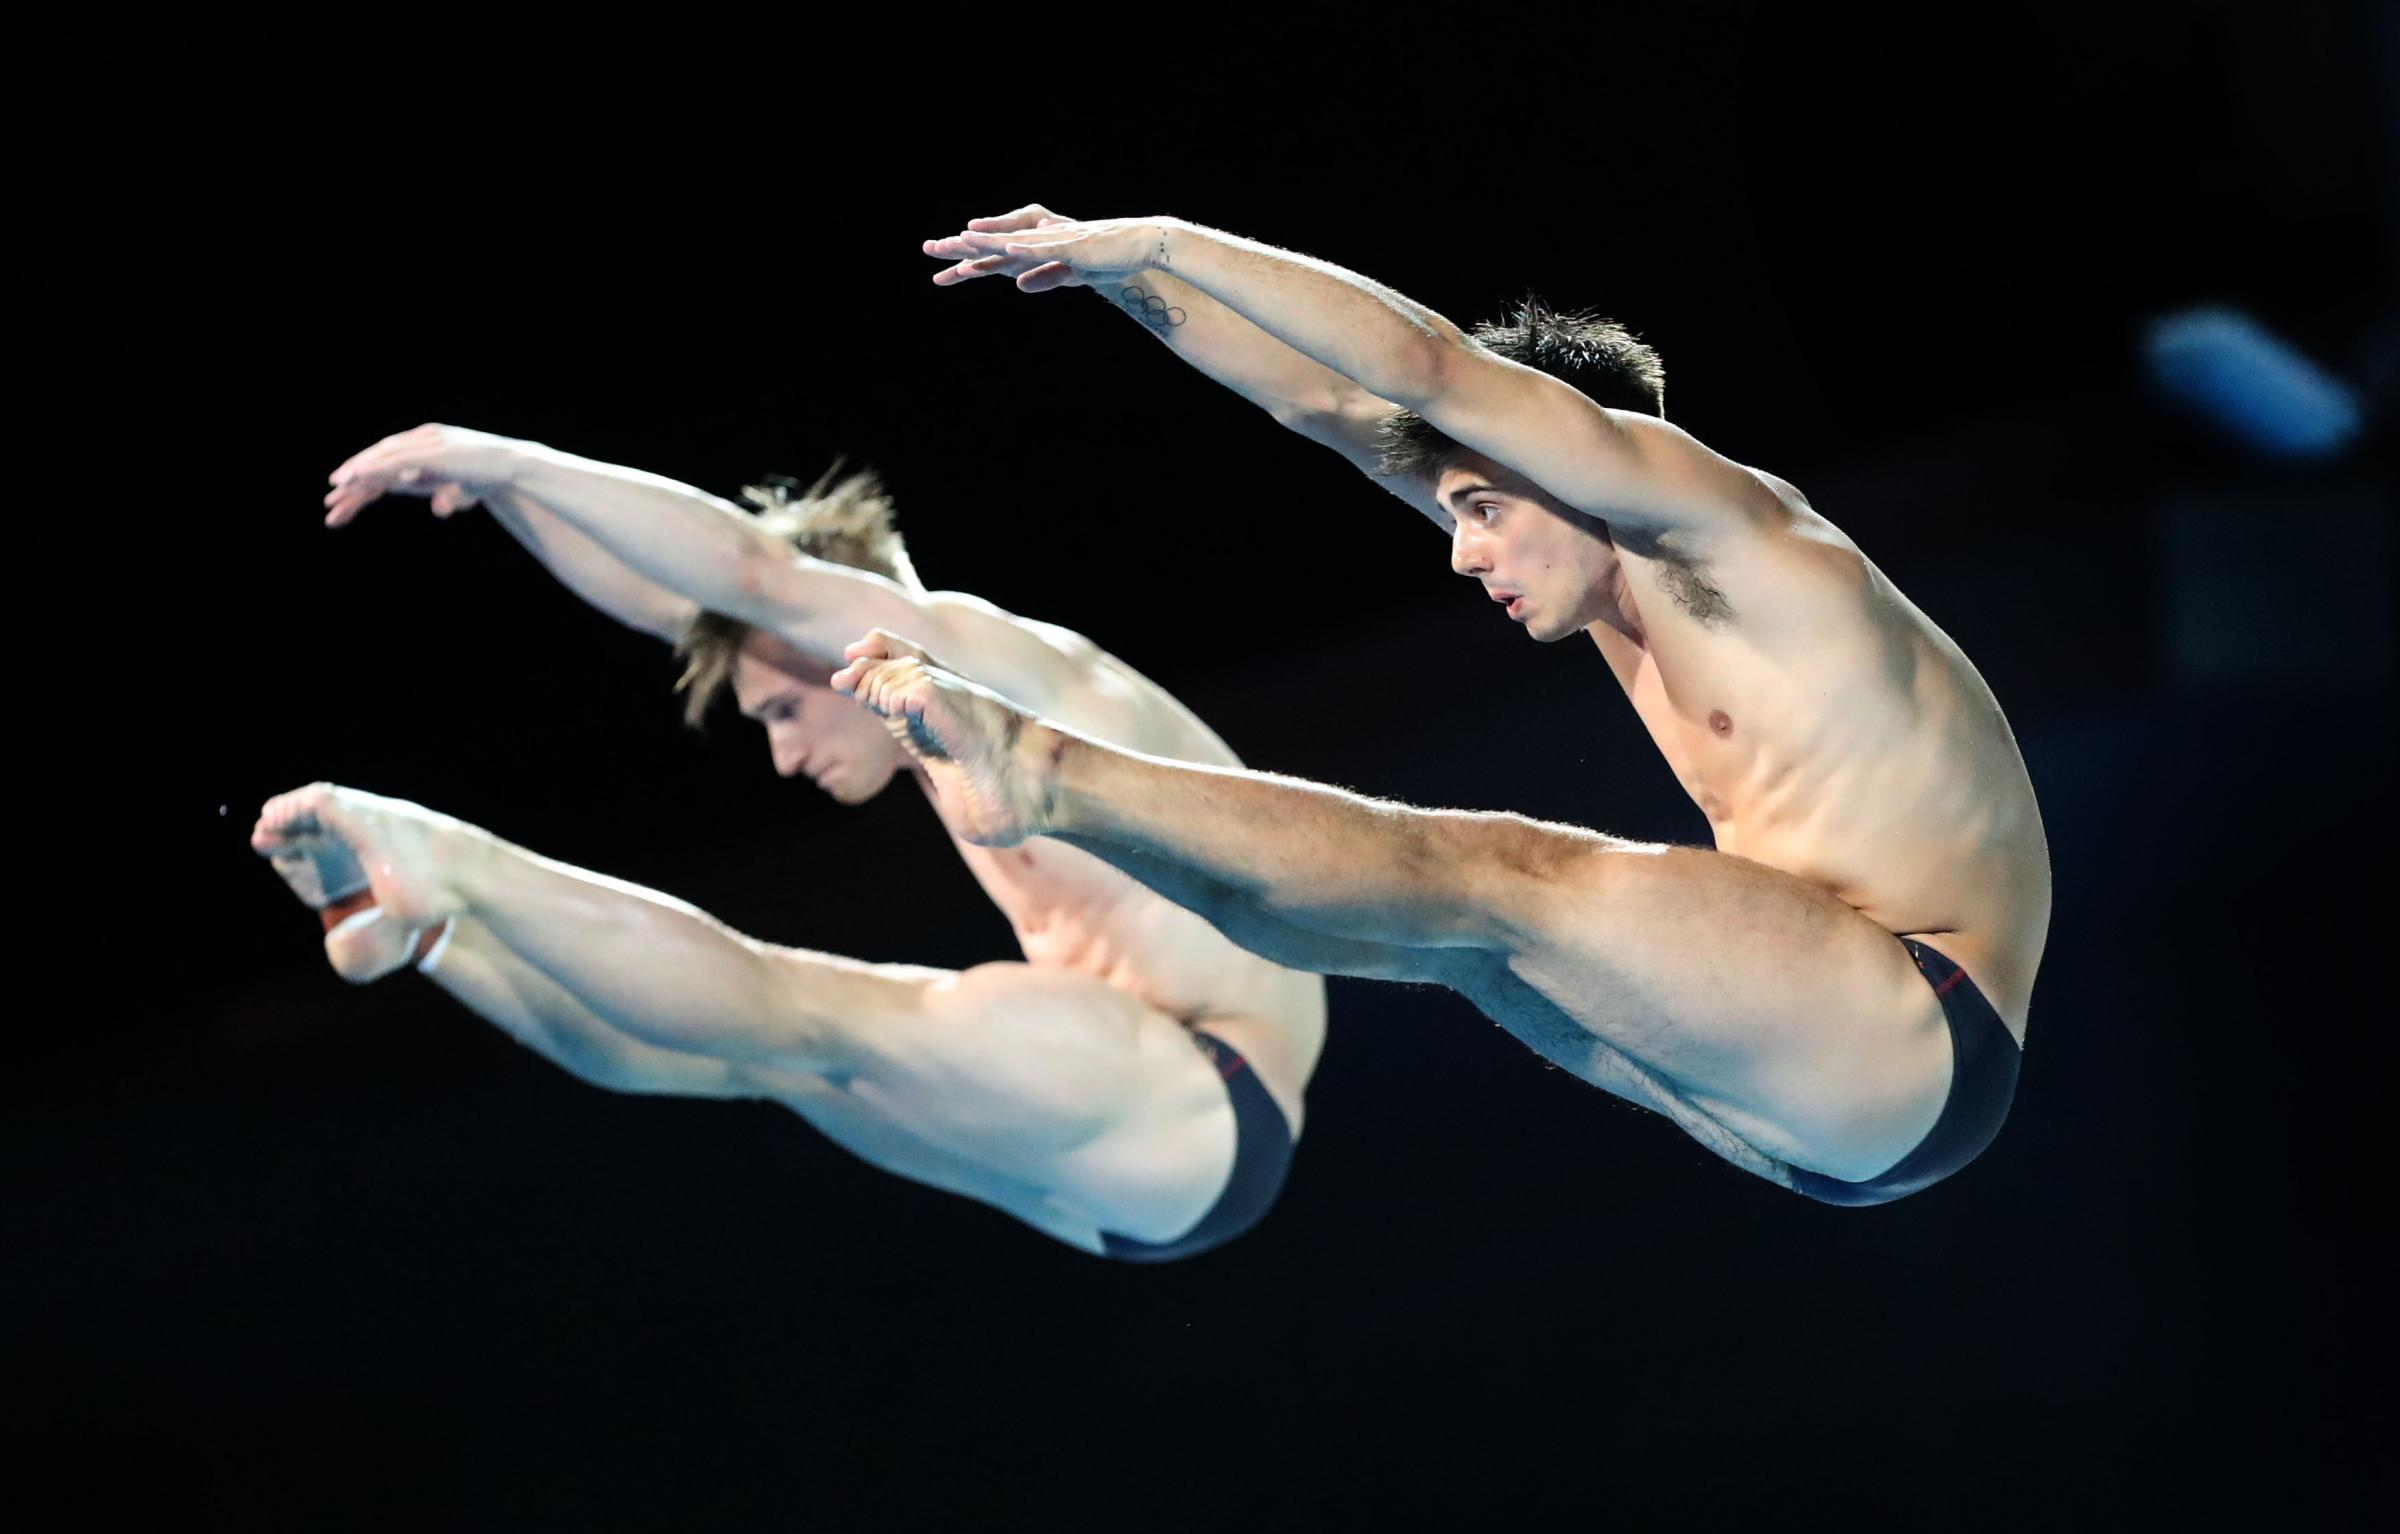 Jack Laugher and Chris Mears claimed silver at the Diving World Cup in China